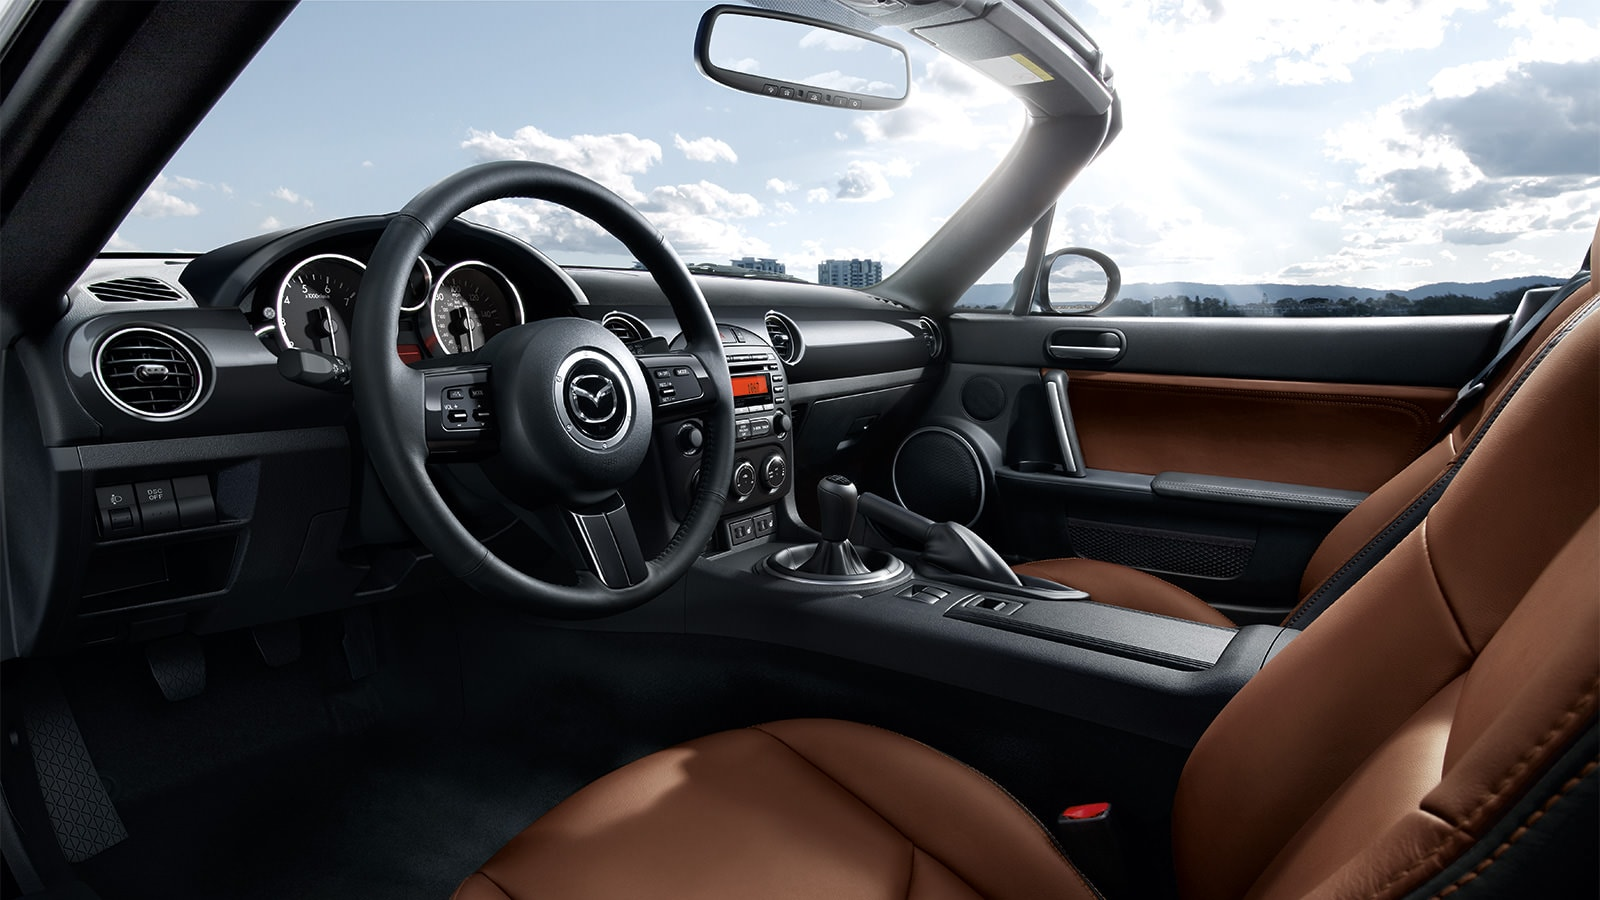 2015 Mazda MX-5 Interior Seating